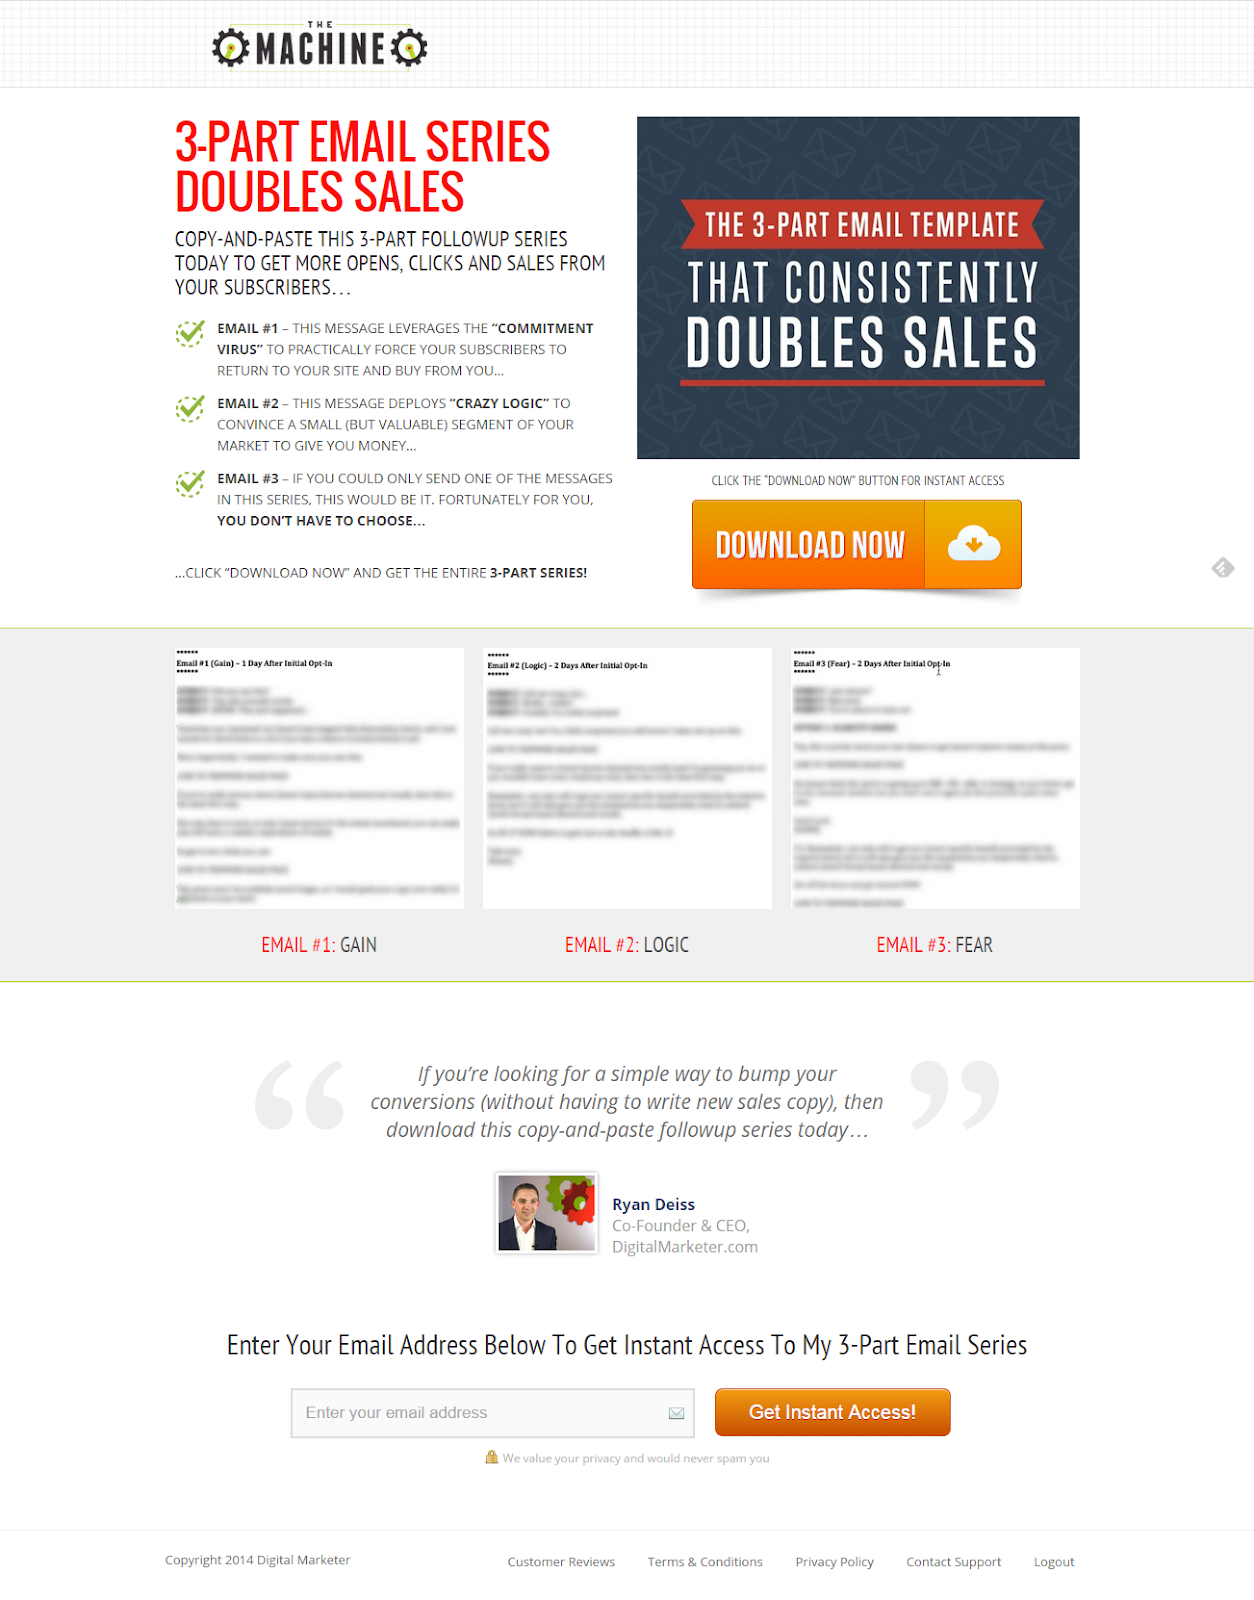 Screenshot of a lead magnet page offering a lead magnet with a three part email template to increase sales